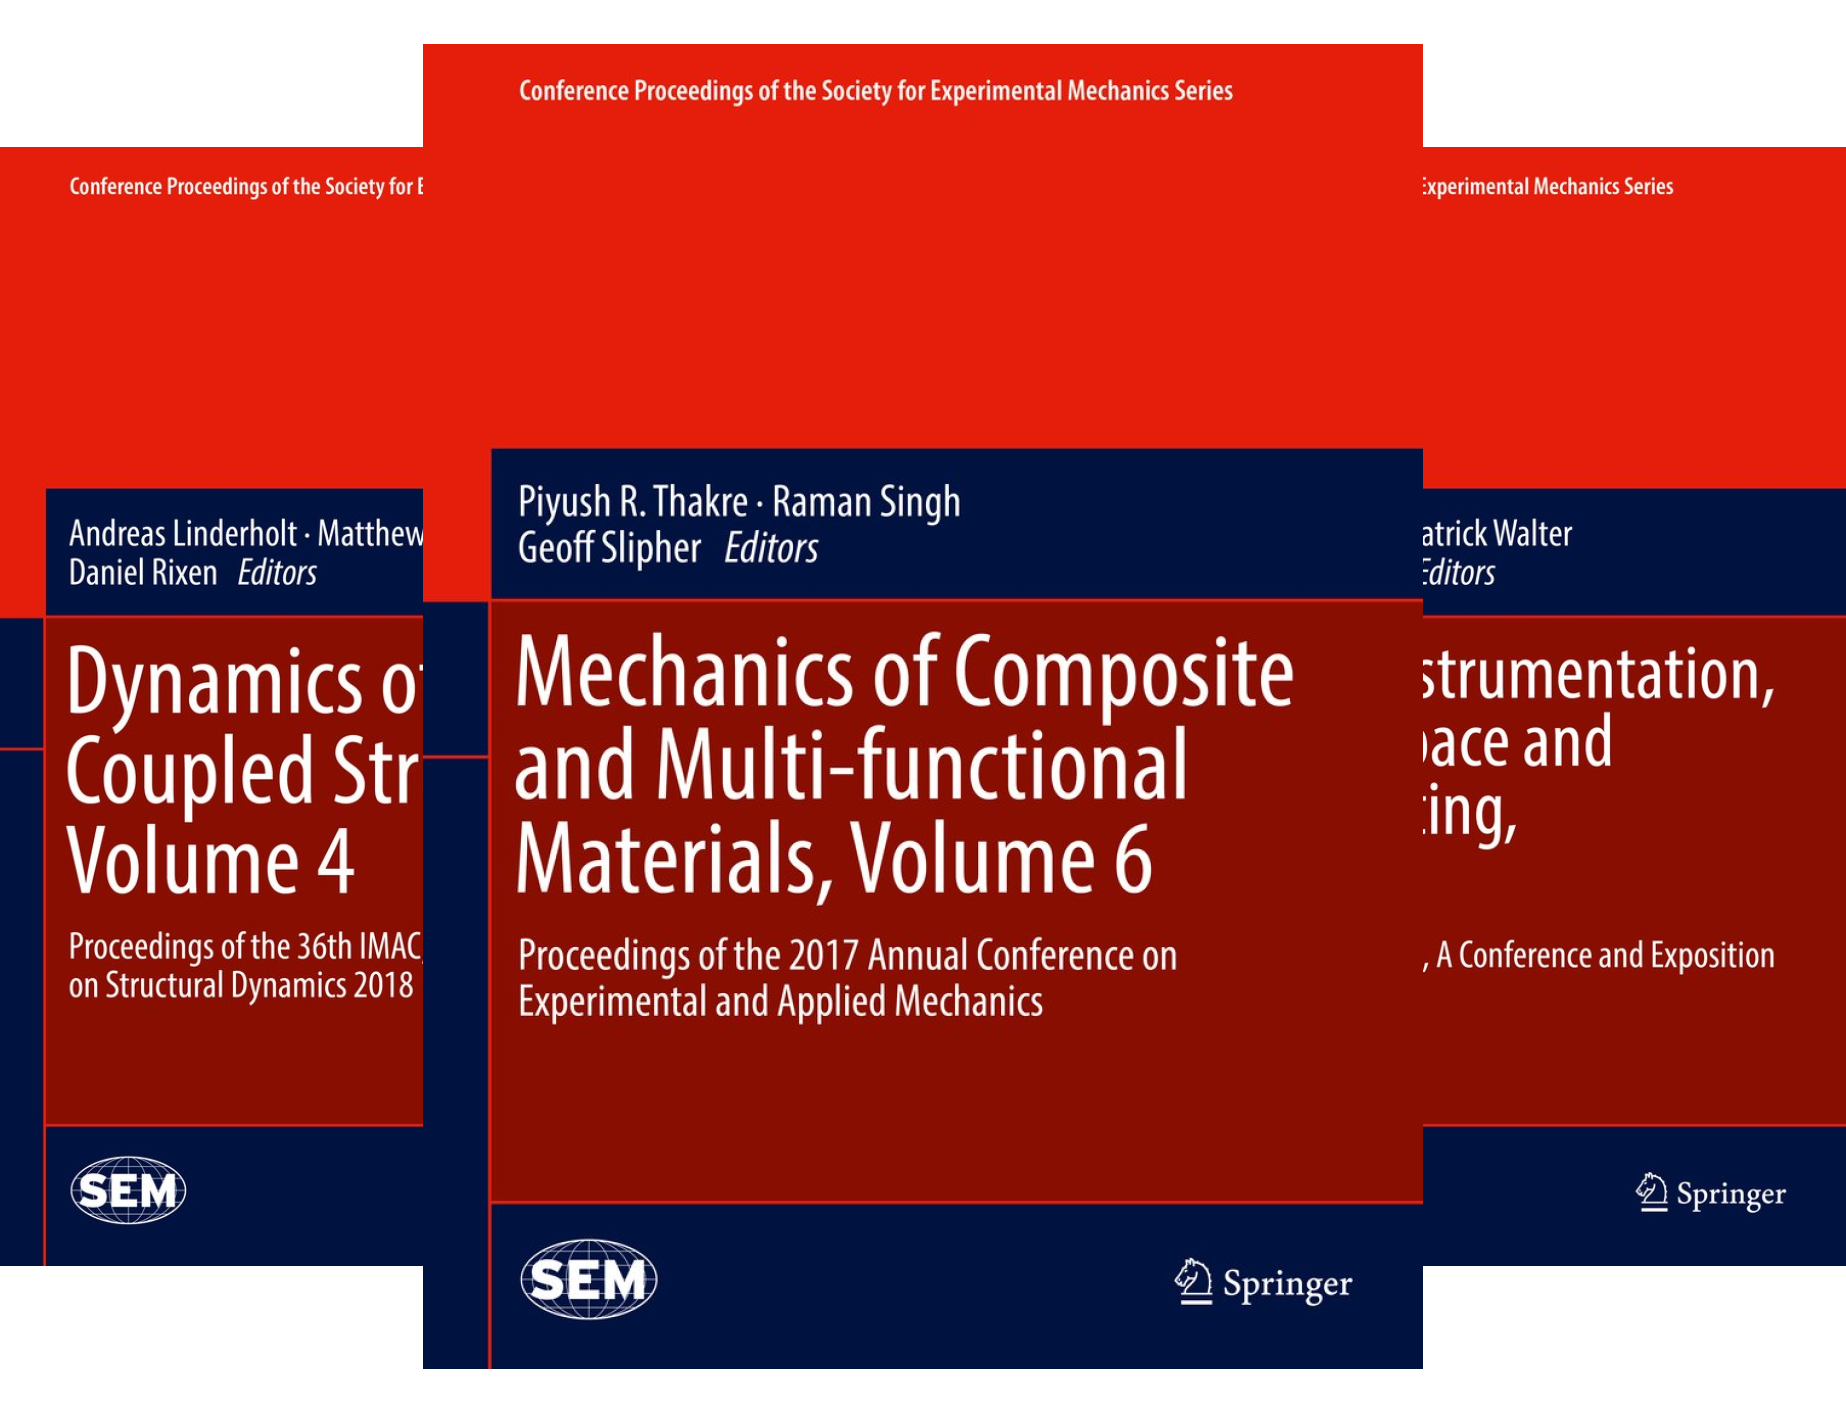 Conference Proceedings of the Society for Experimental Mechanics (101-147) (47 Book Series)